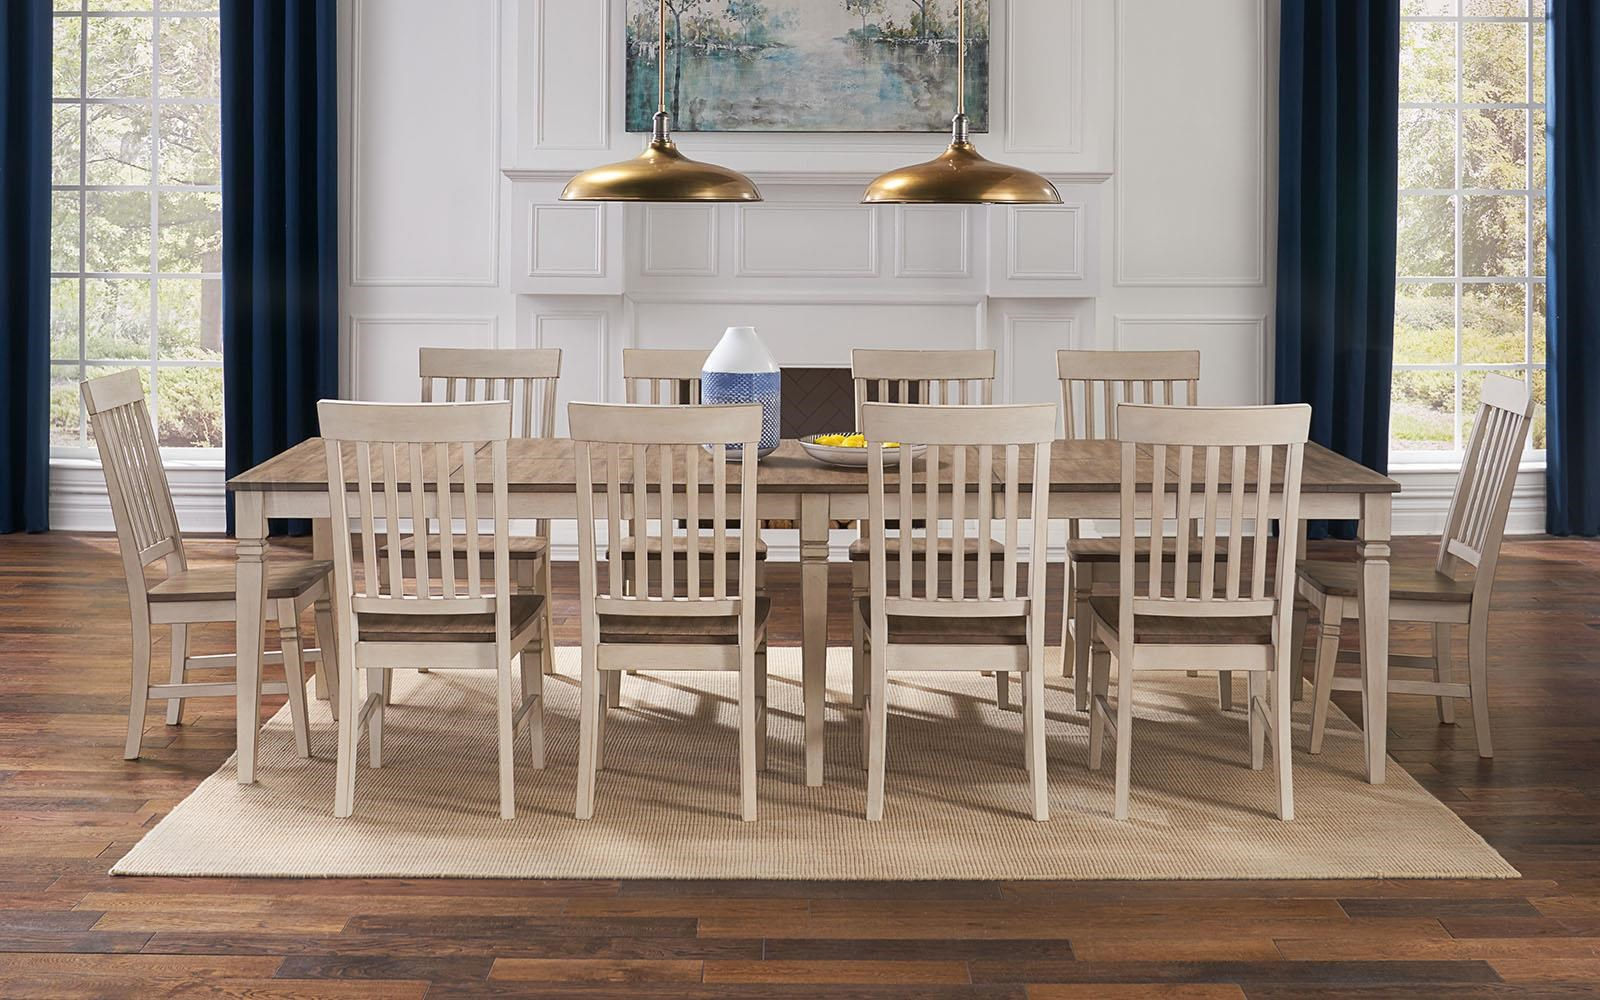 Beacon Rectangular Leg Table and Slatback Chairs by AAmerica at Johnny Janosik